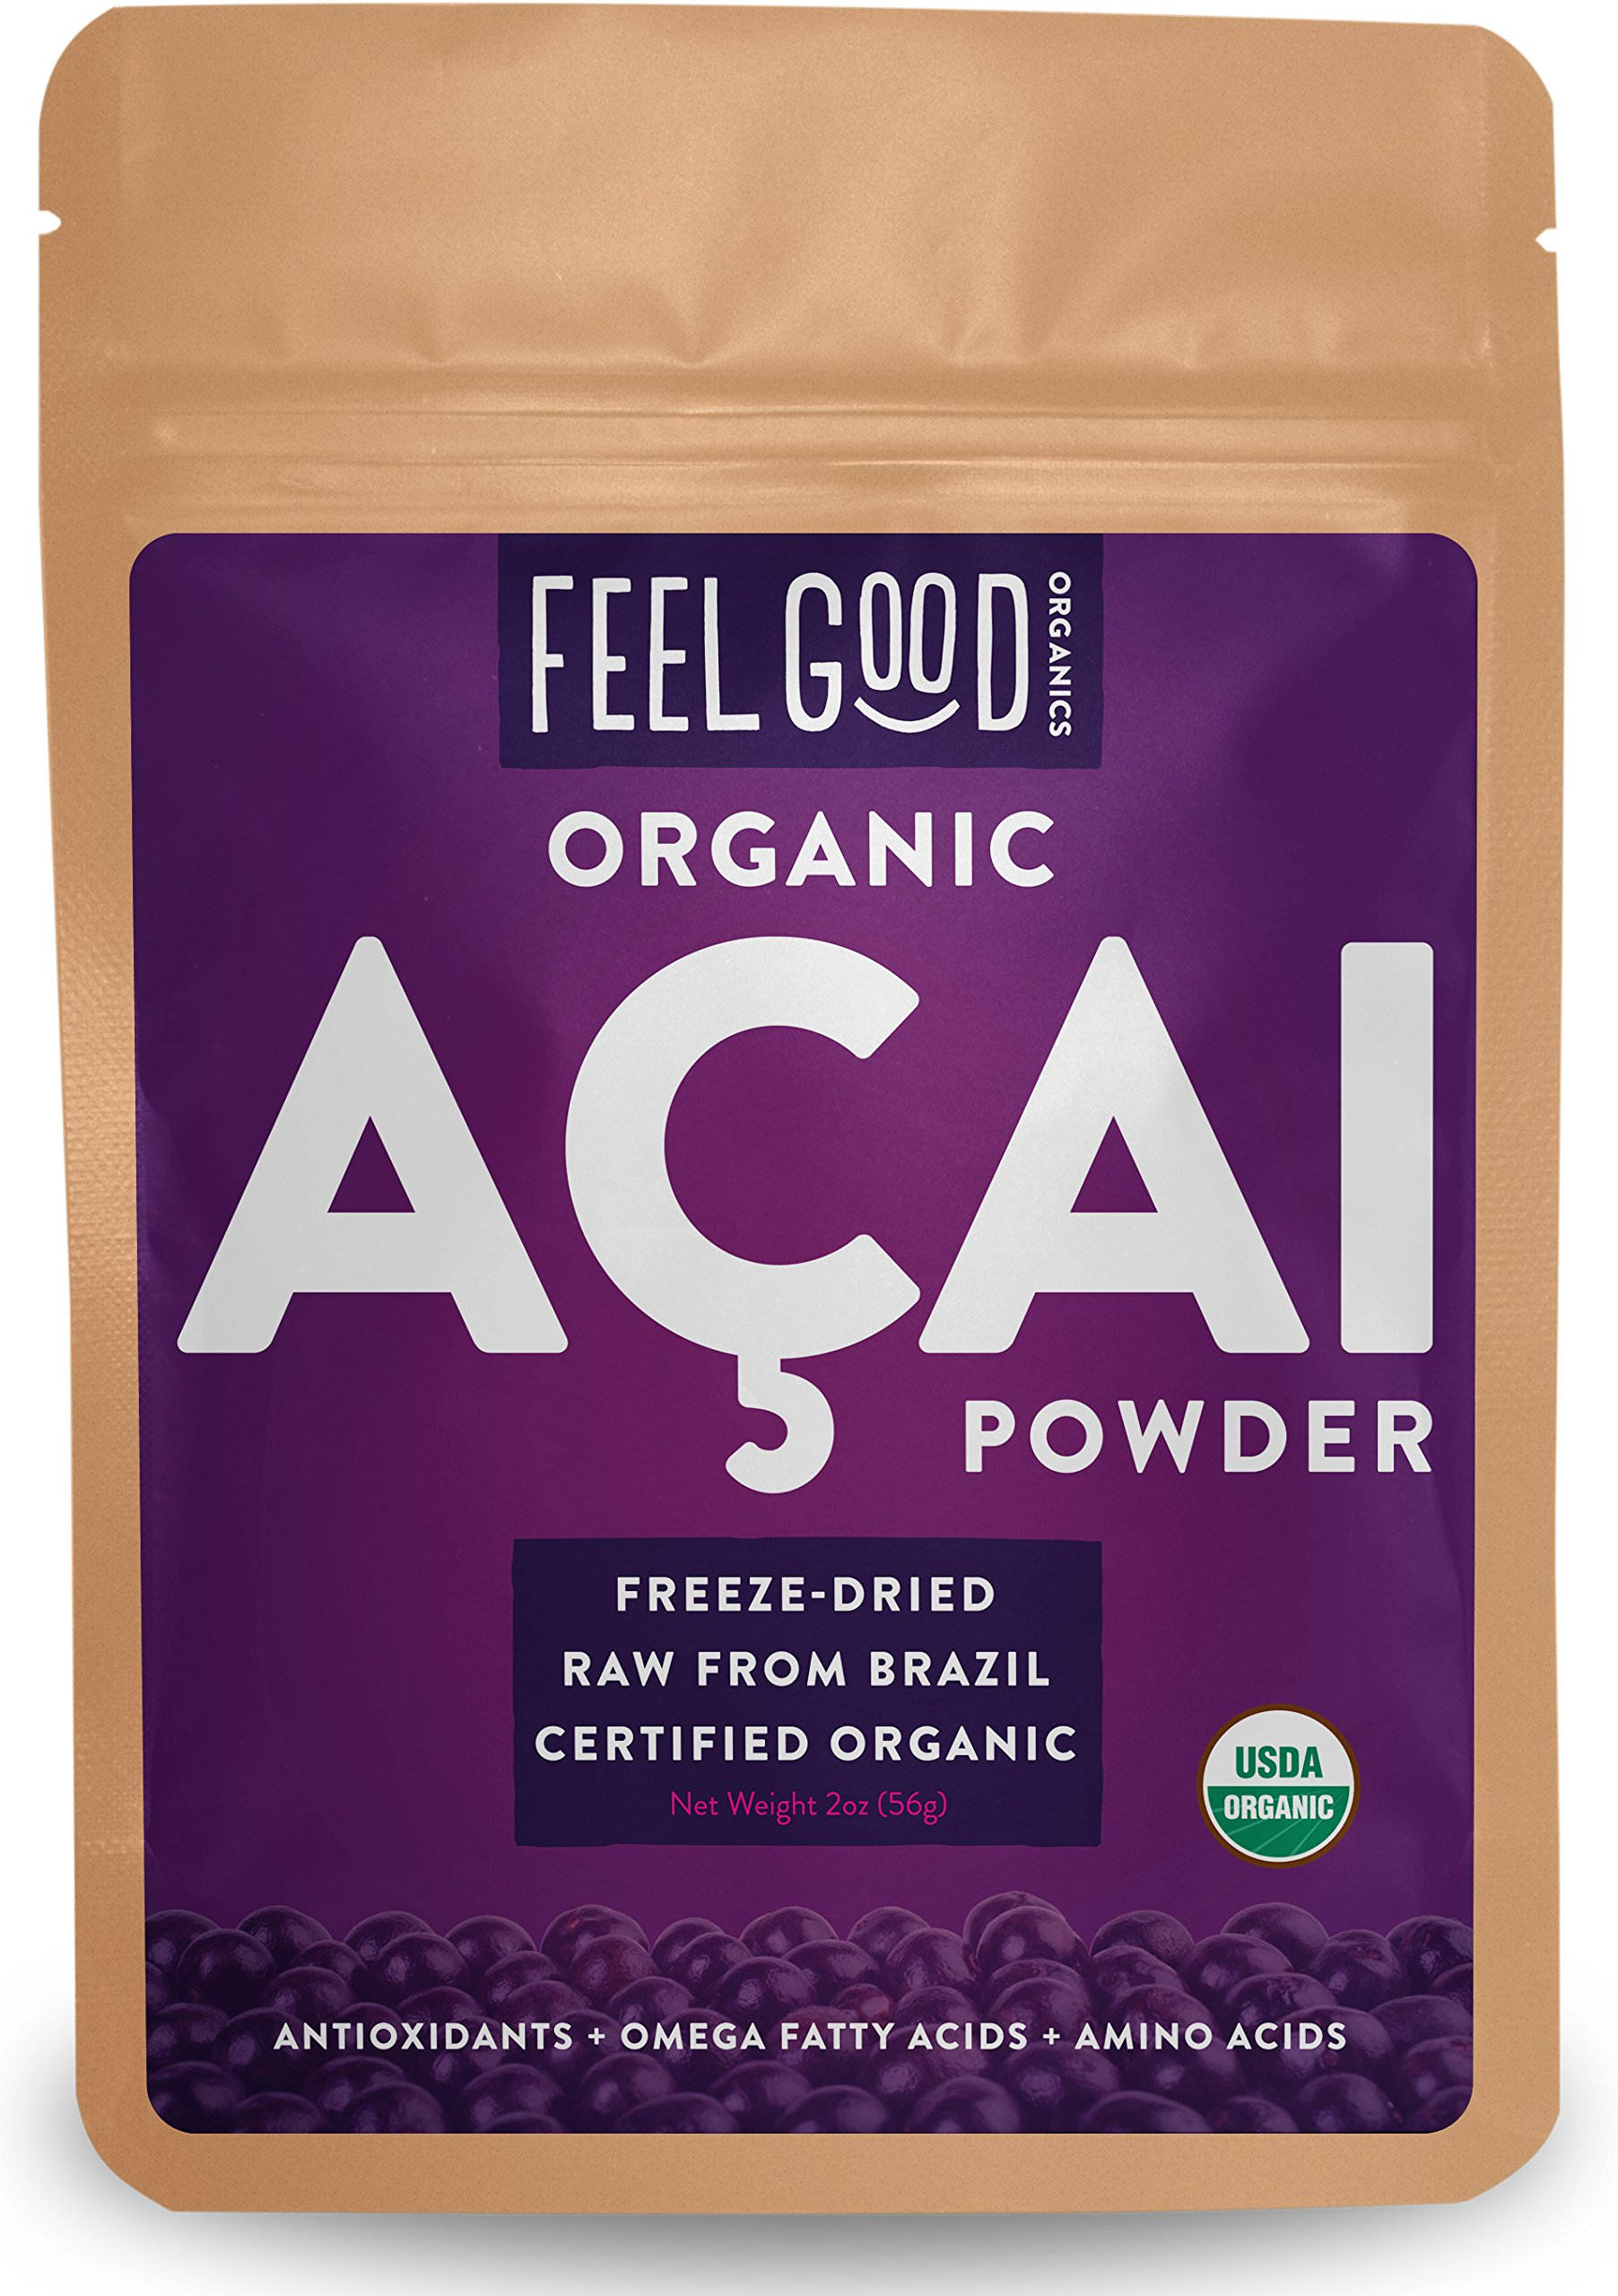 Organic ACAI Powder (Freeze-Dried) - 2oz Resealable Bag - 100% Raw Antioxidant Superfood Berry From Brazil - by Feel Good Organics